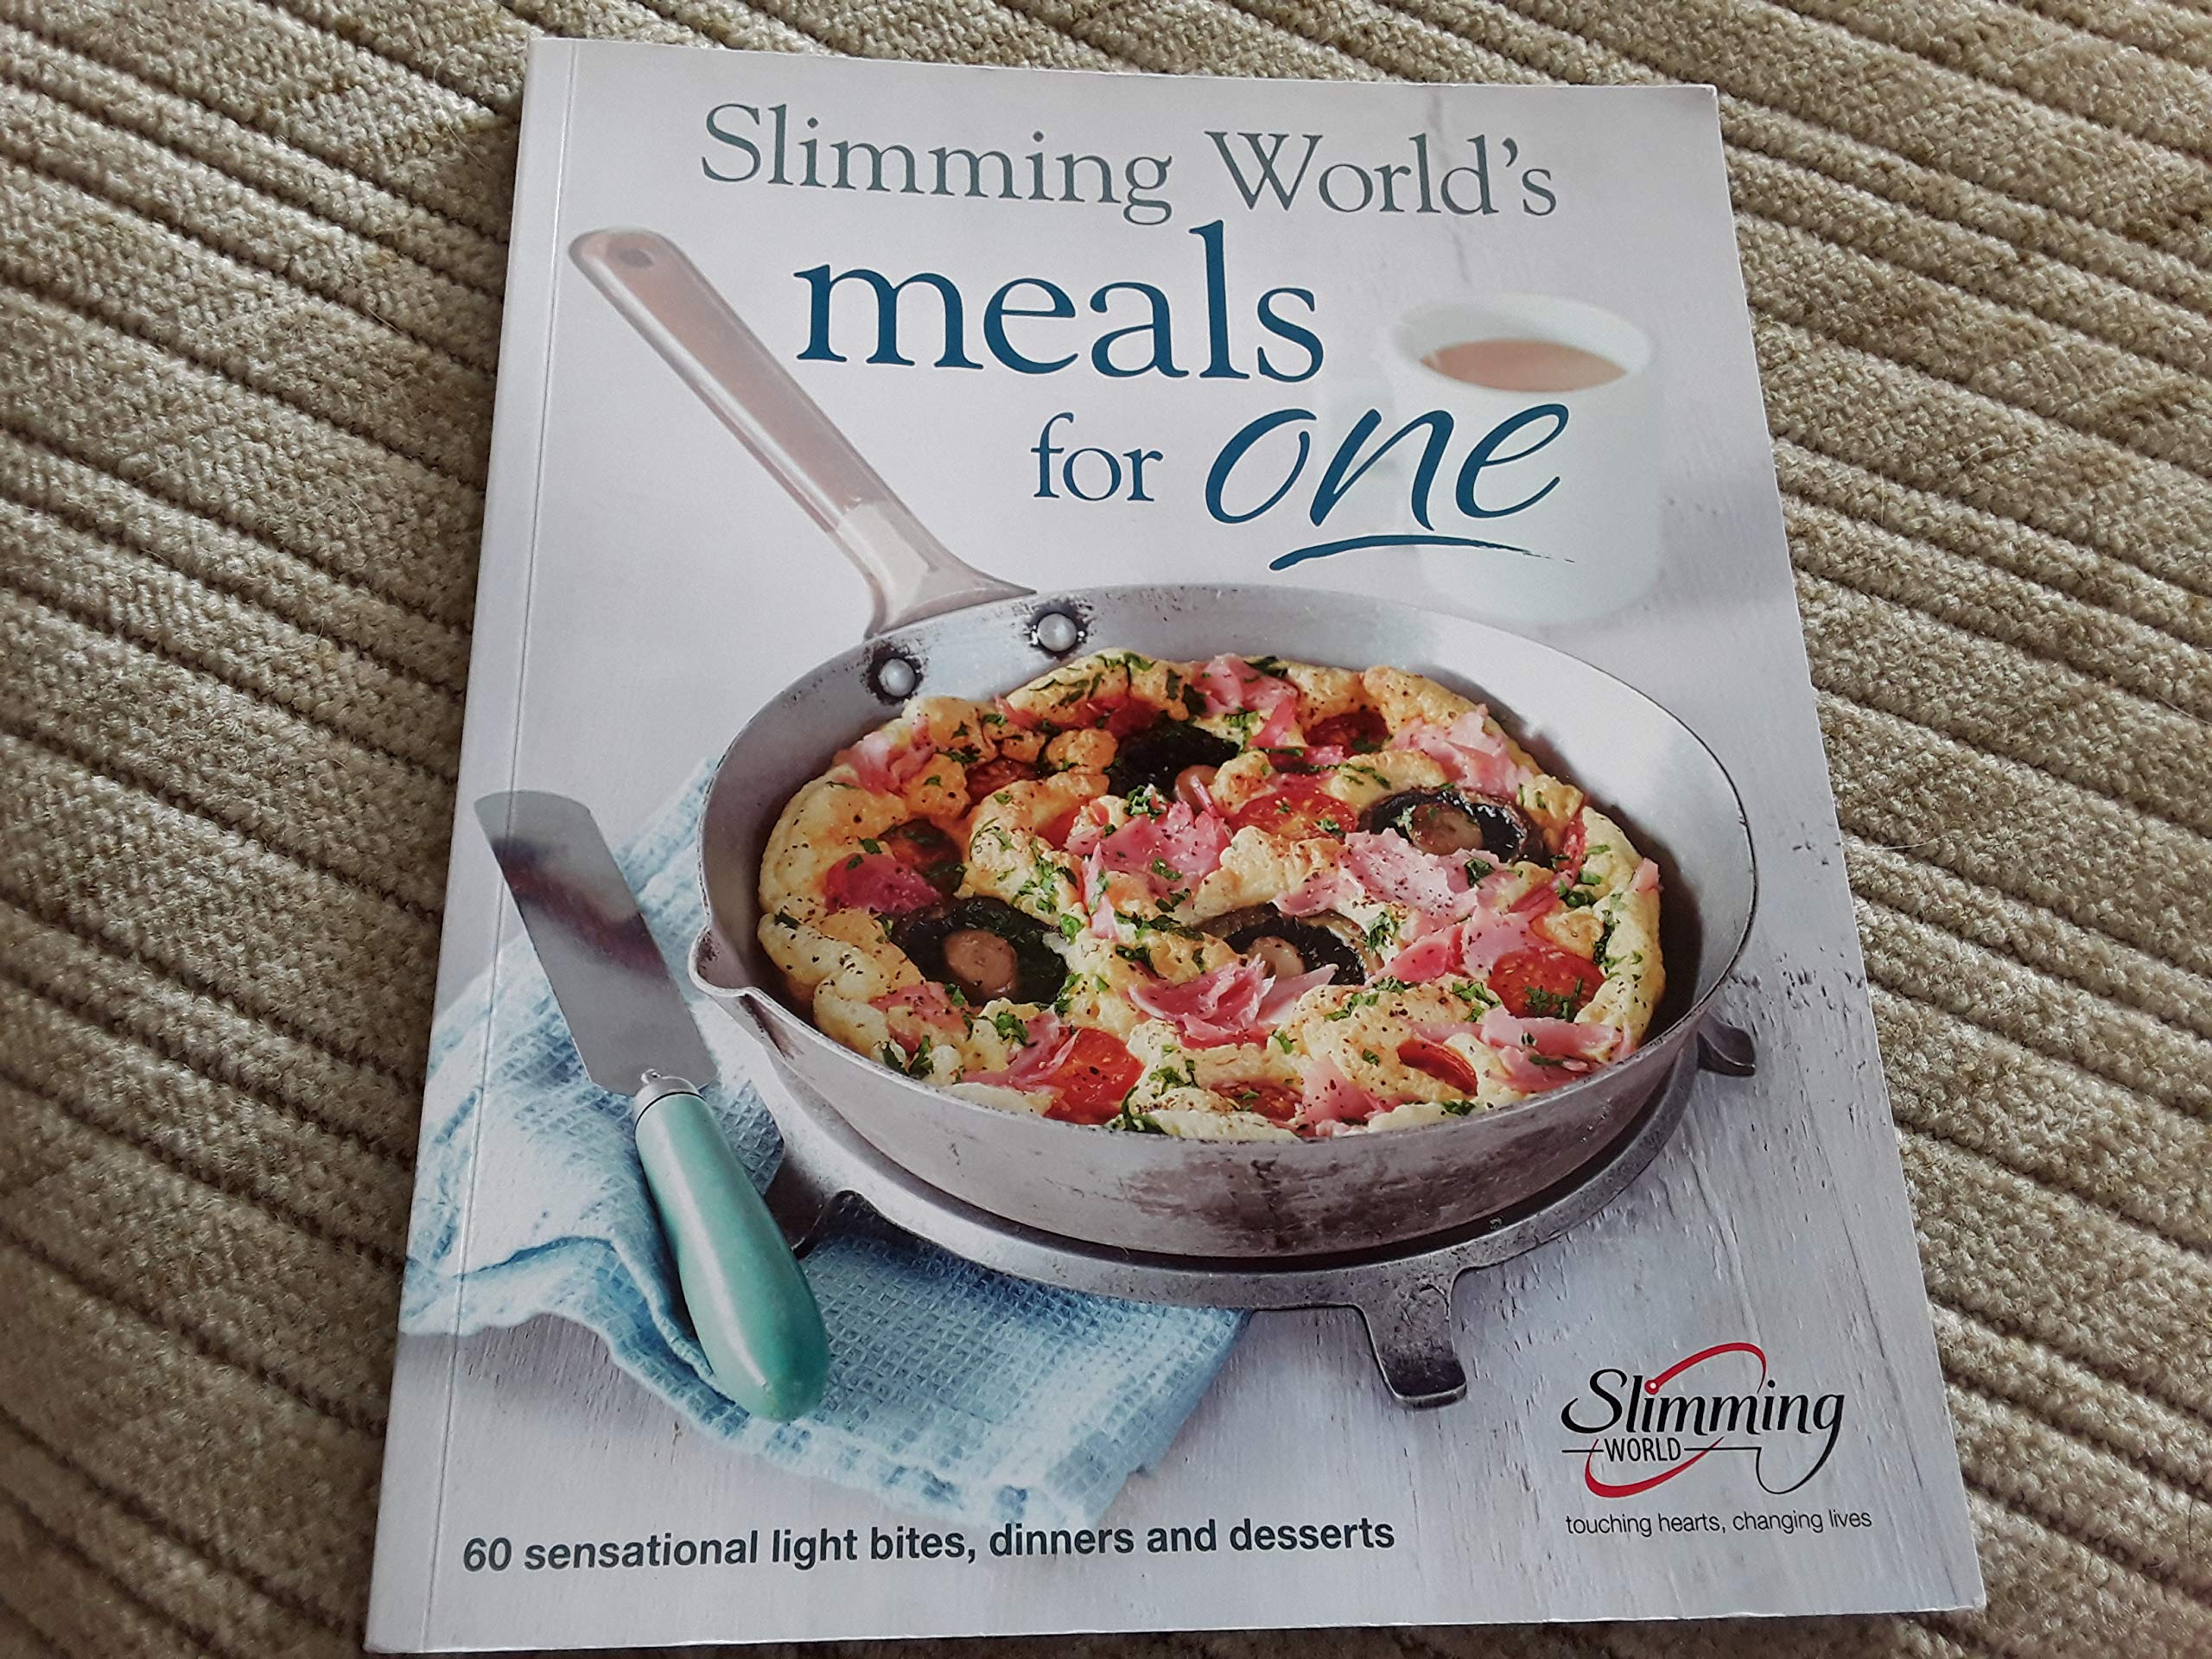 SLIMMING WORLD Meals for One Amazon.co.uk 9781462507146 Books